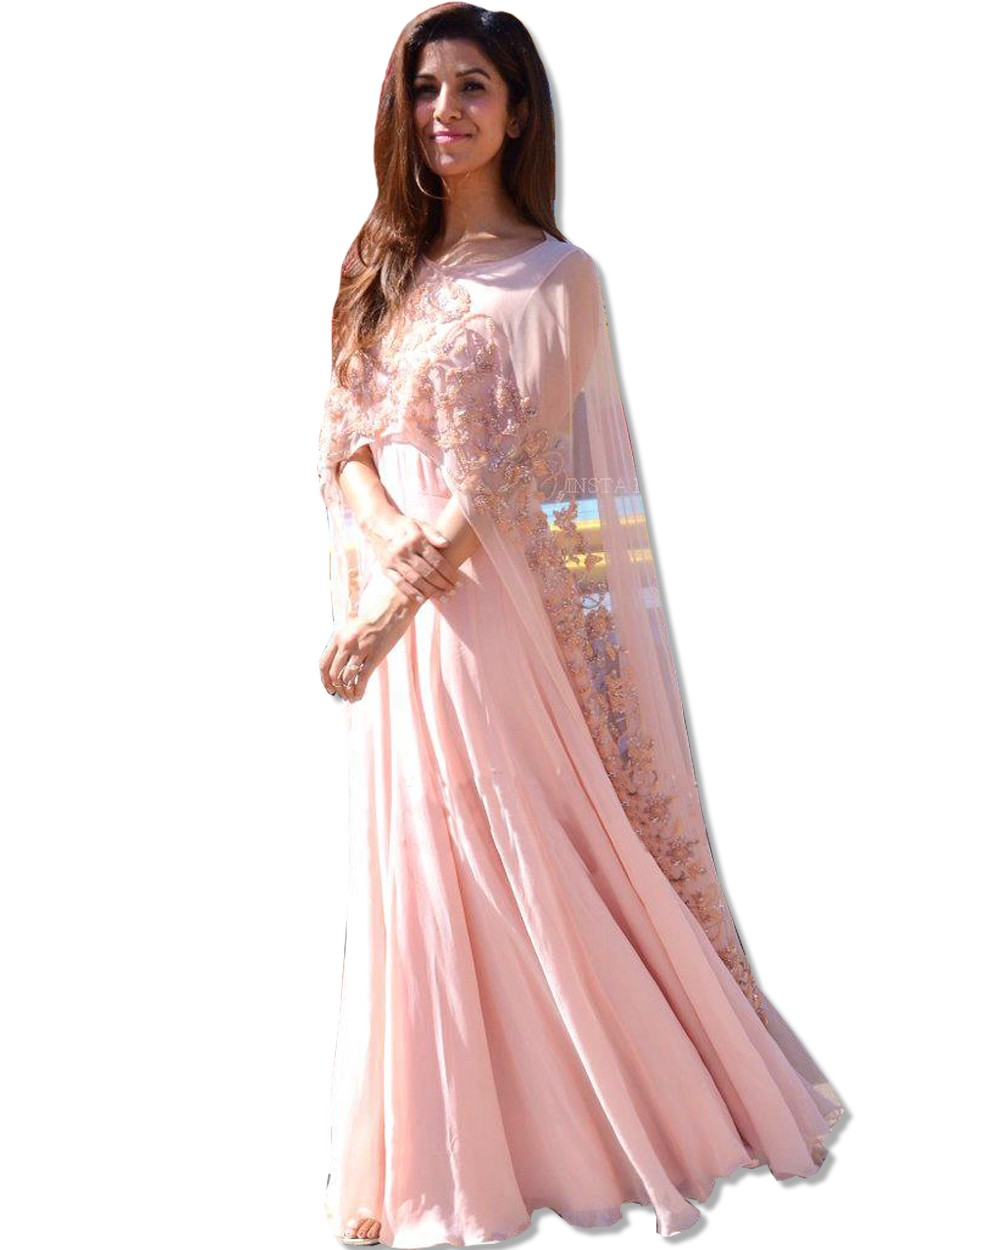 fec162f9c Embroidered Blush Floor Length Dress Manufacturer   Manufacturer ...